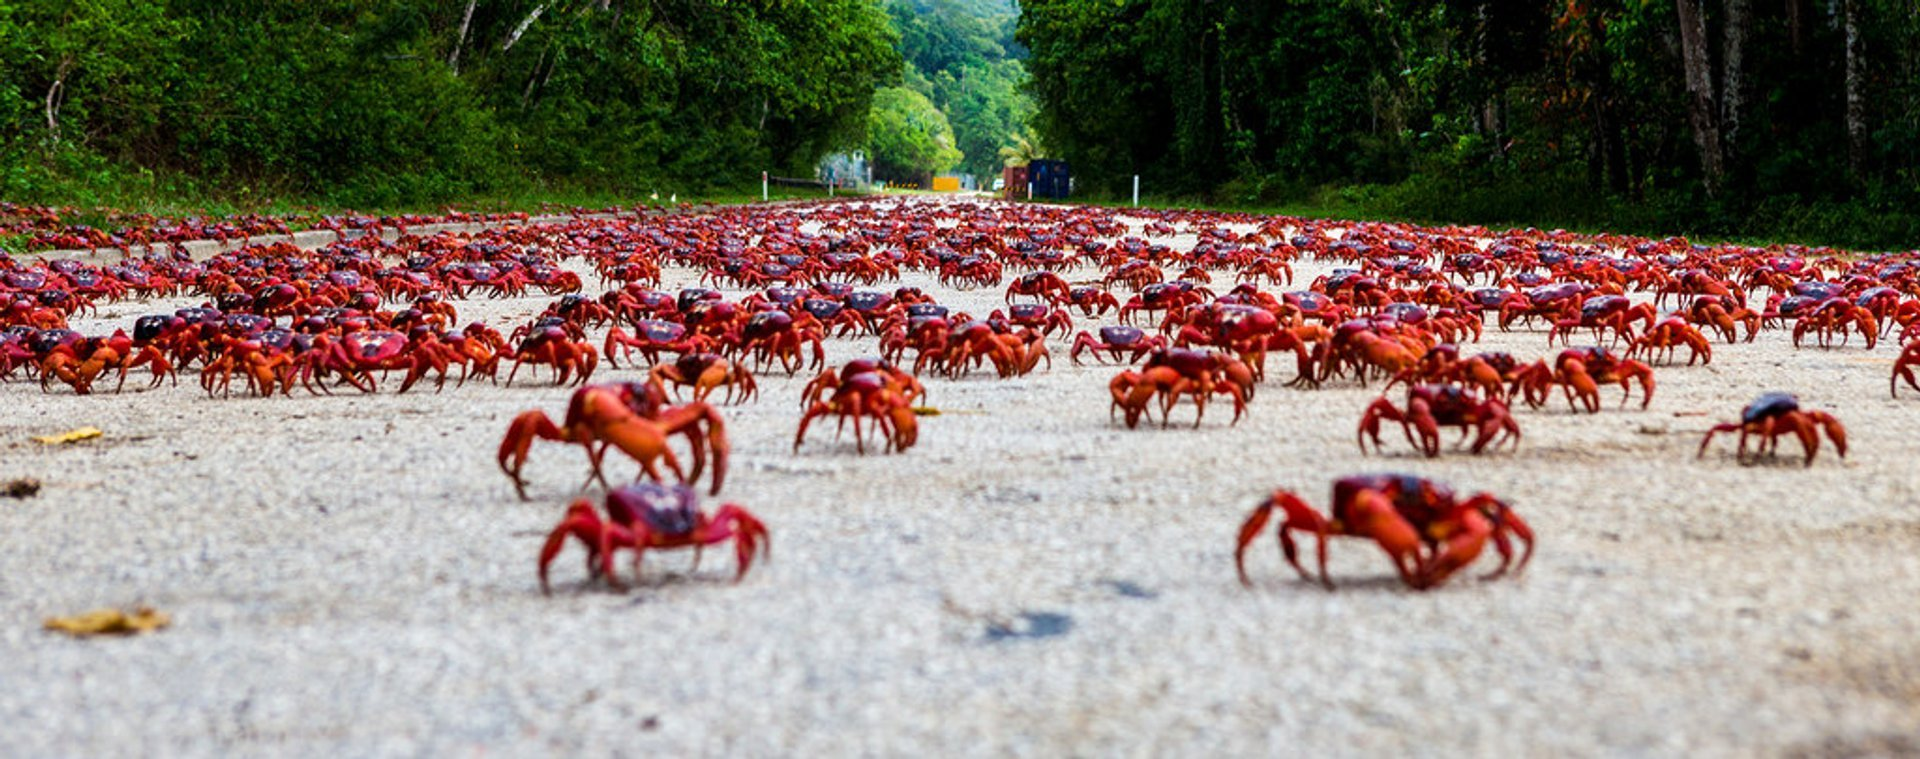 Best Time to See Red Crab Migration in Christmas Island 2020 - Rove.me